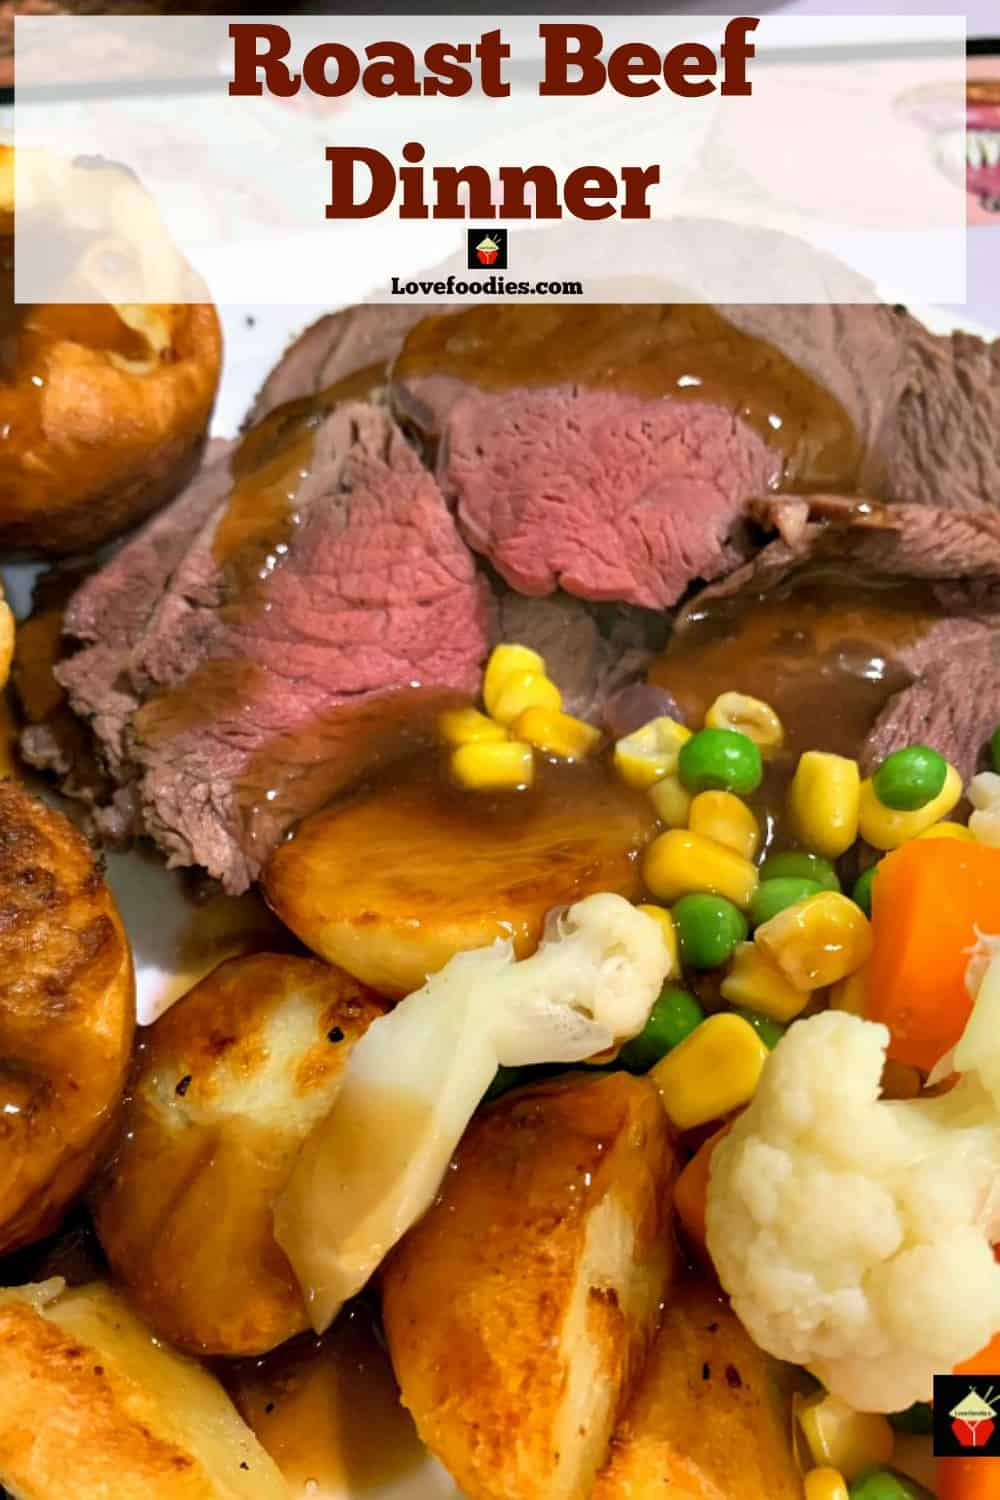 Roast Beef Dinner with cook times for rare, medium and well done. Juicy tender beef served with all the sides and gravy with timings included